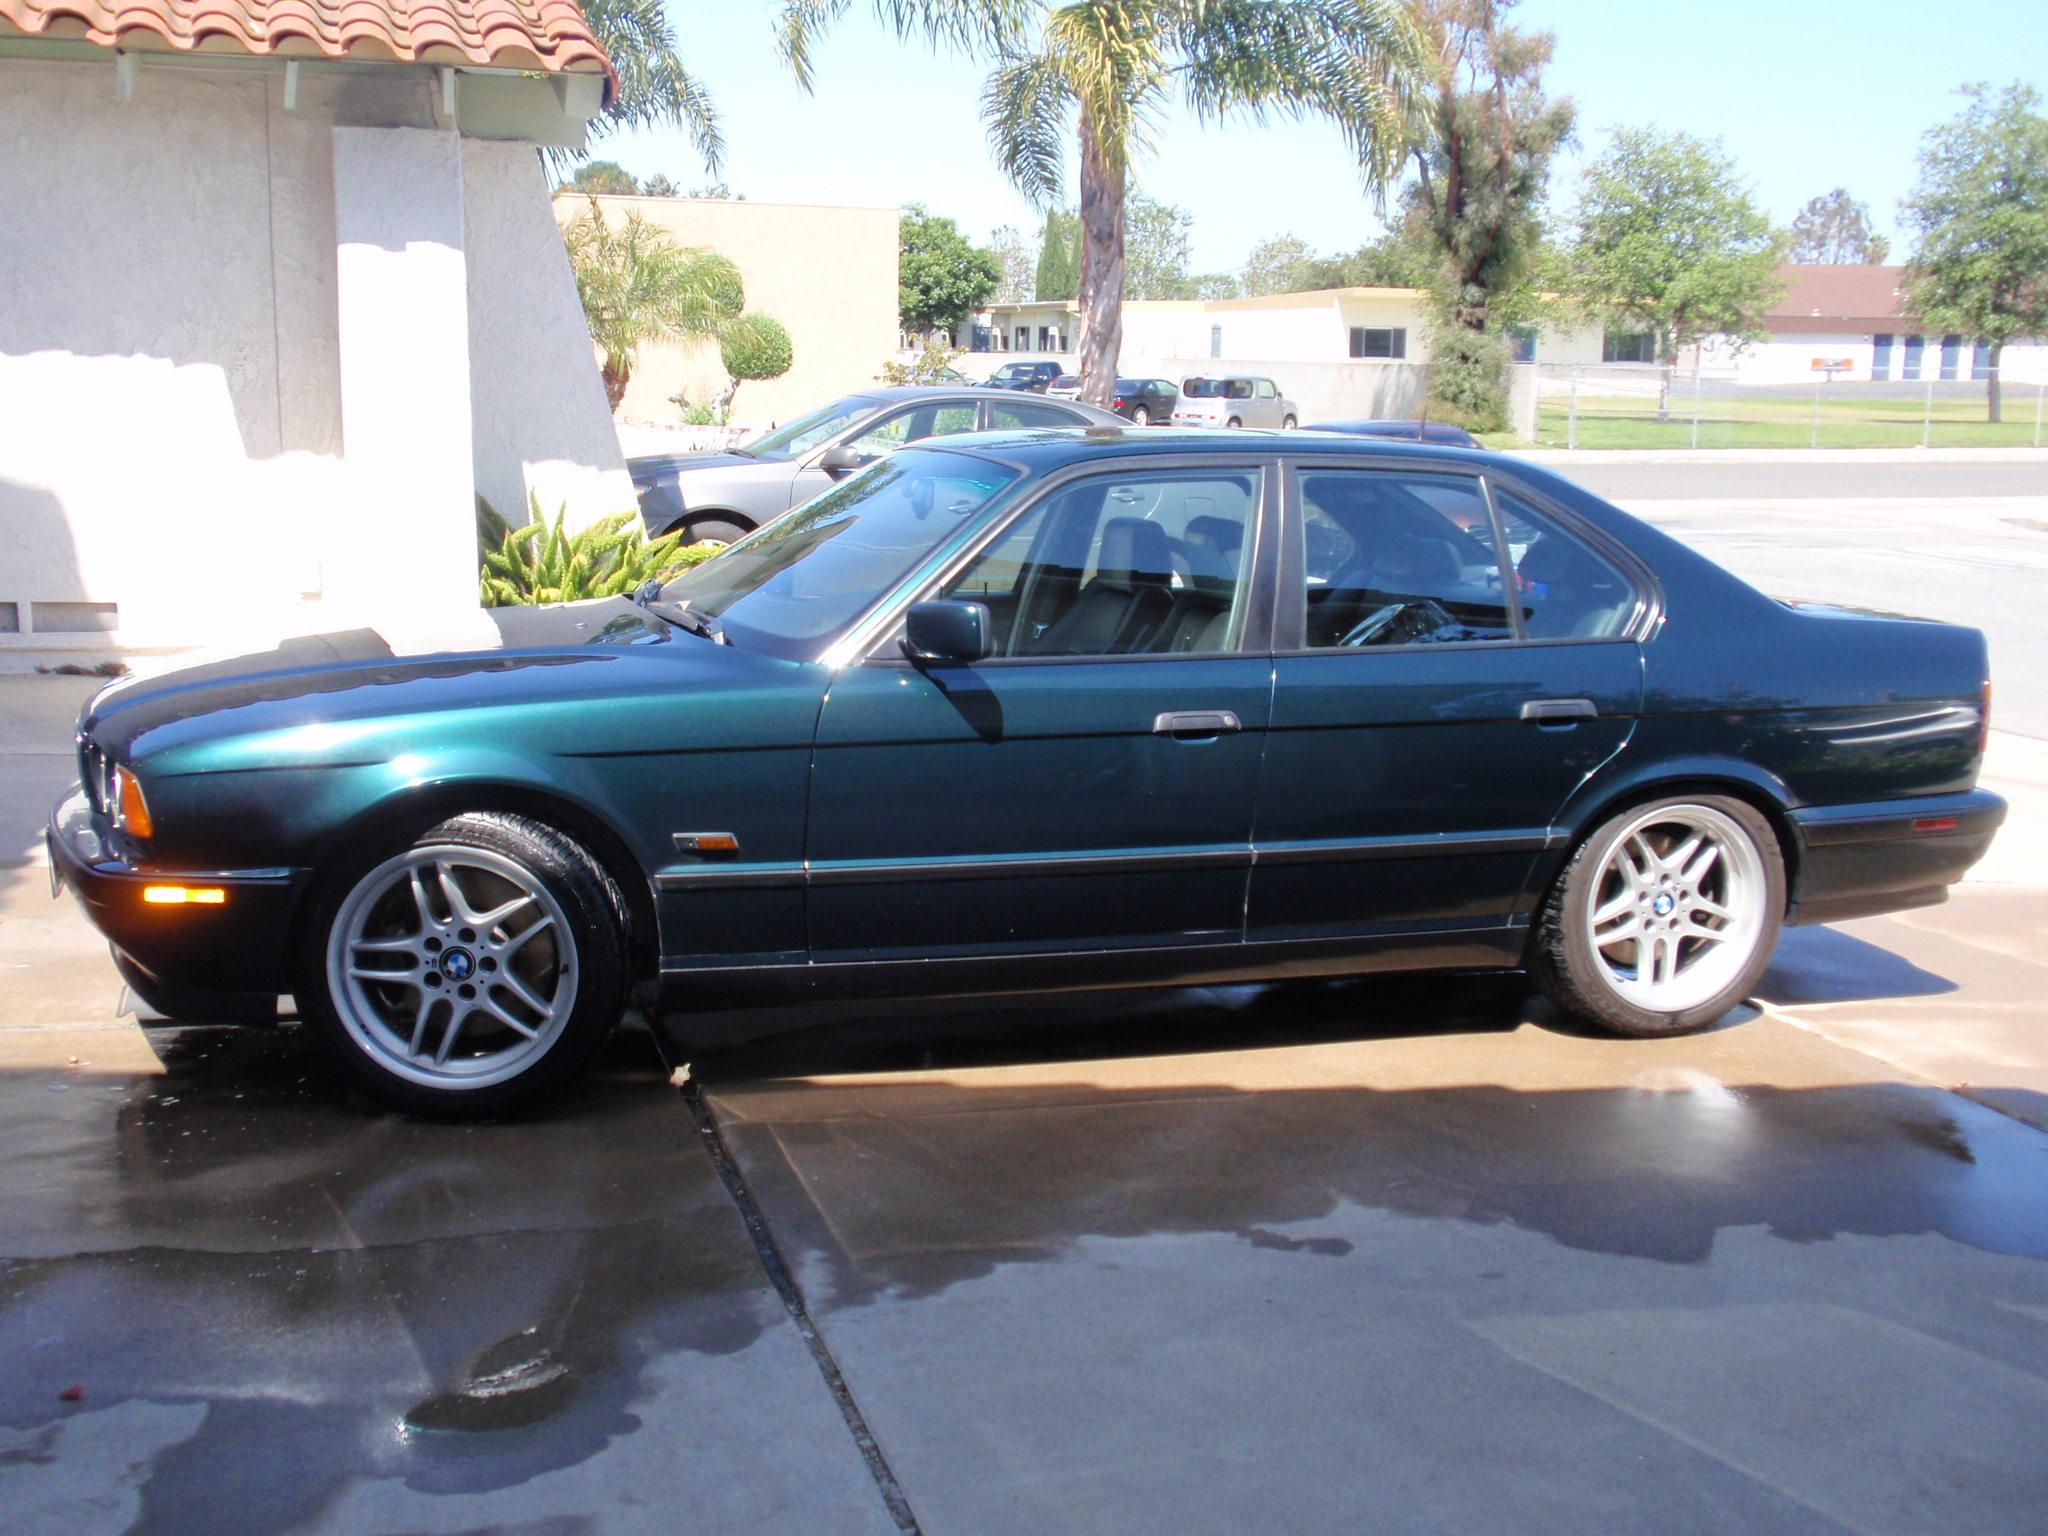 E34 (88-95) For Sale For Sale, BMW M5 E34, 1995 - BMW M5 Forum and ...